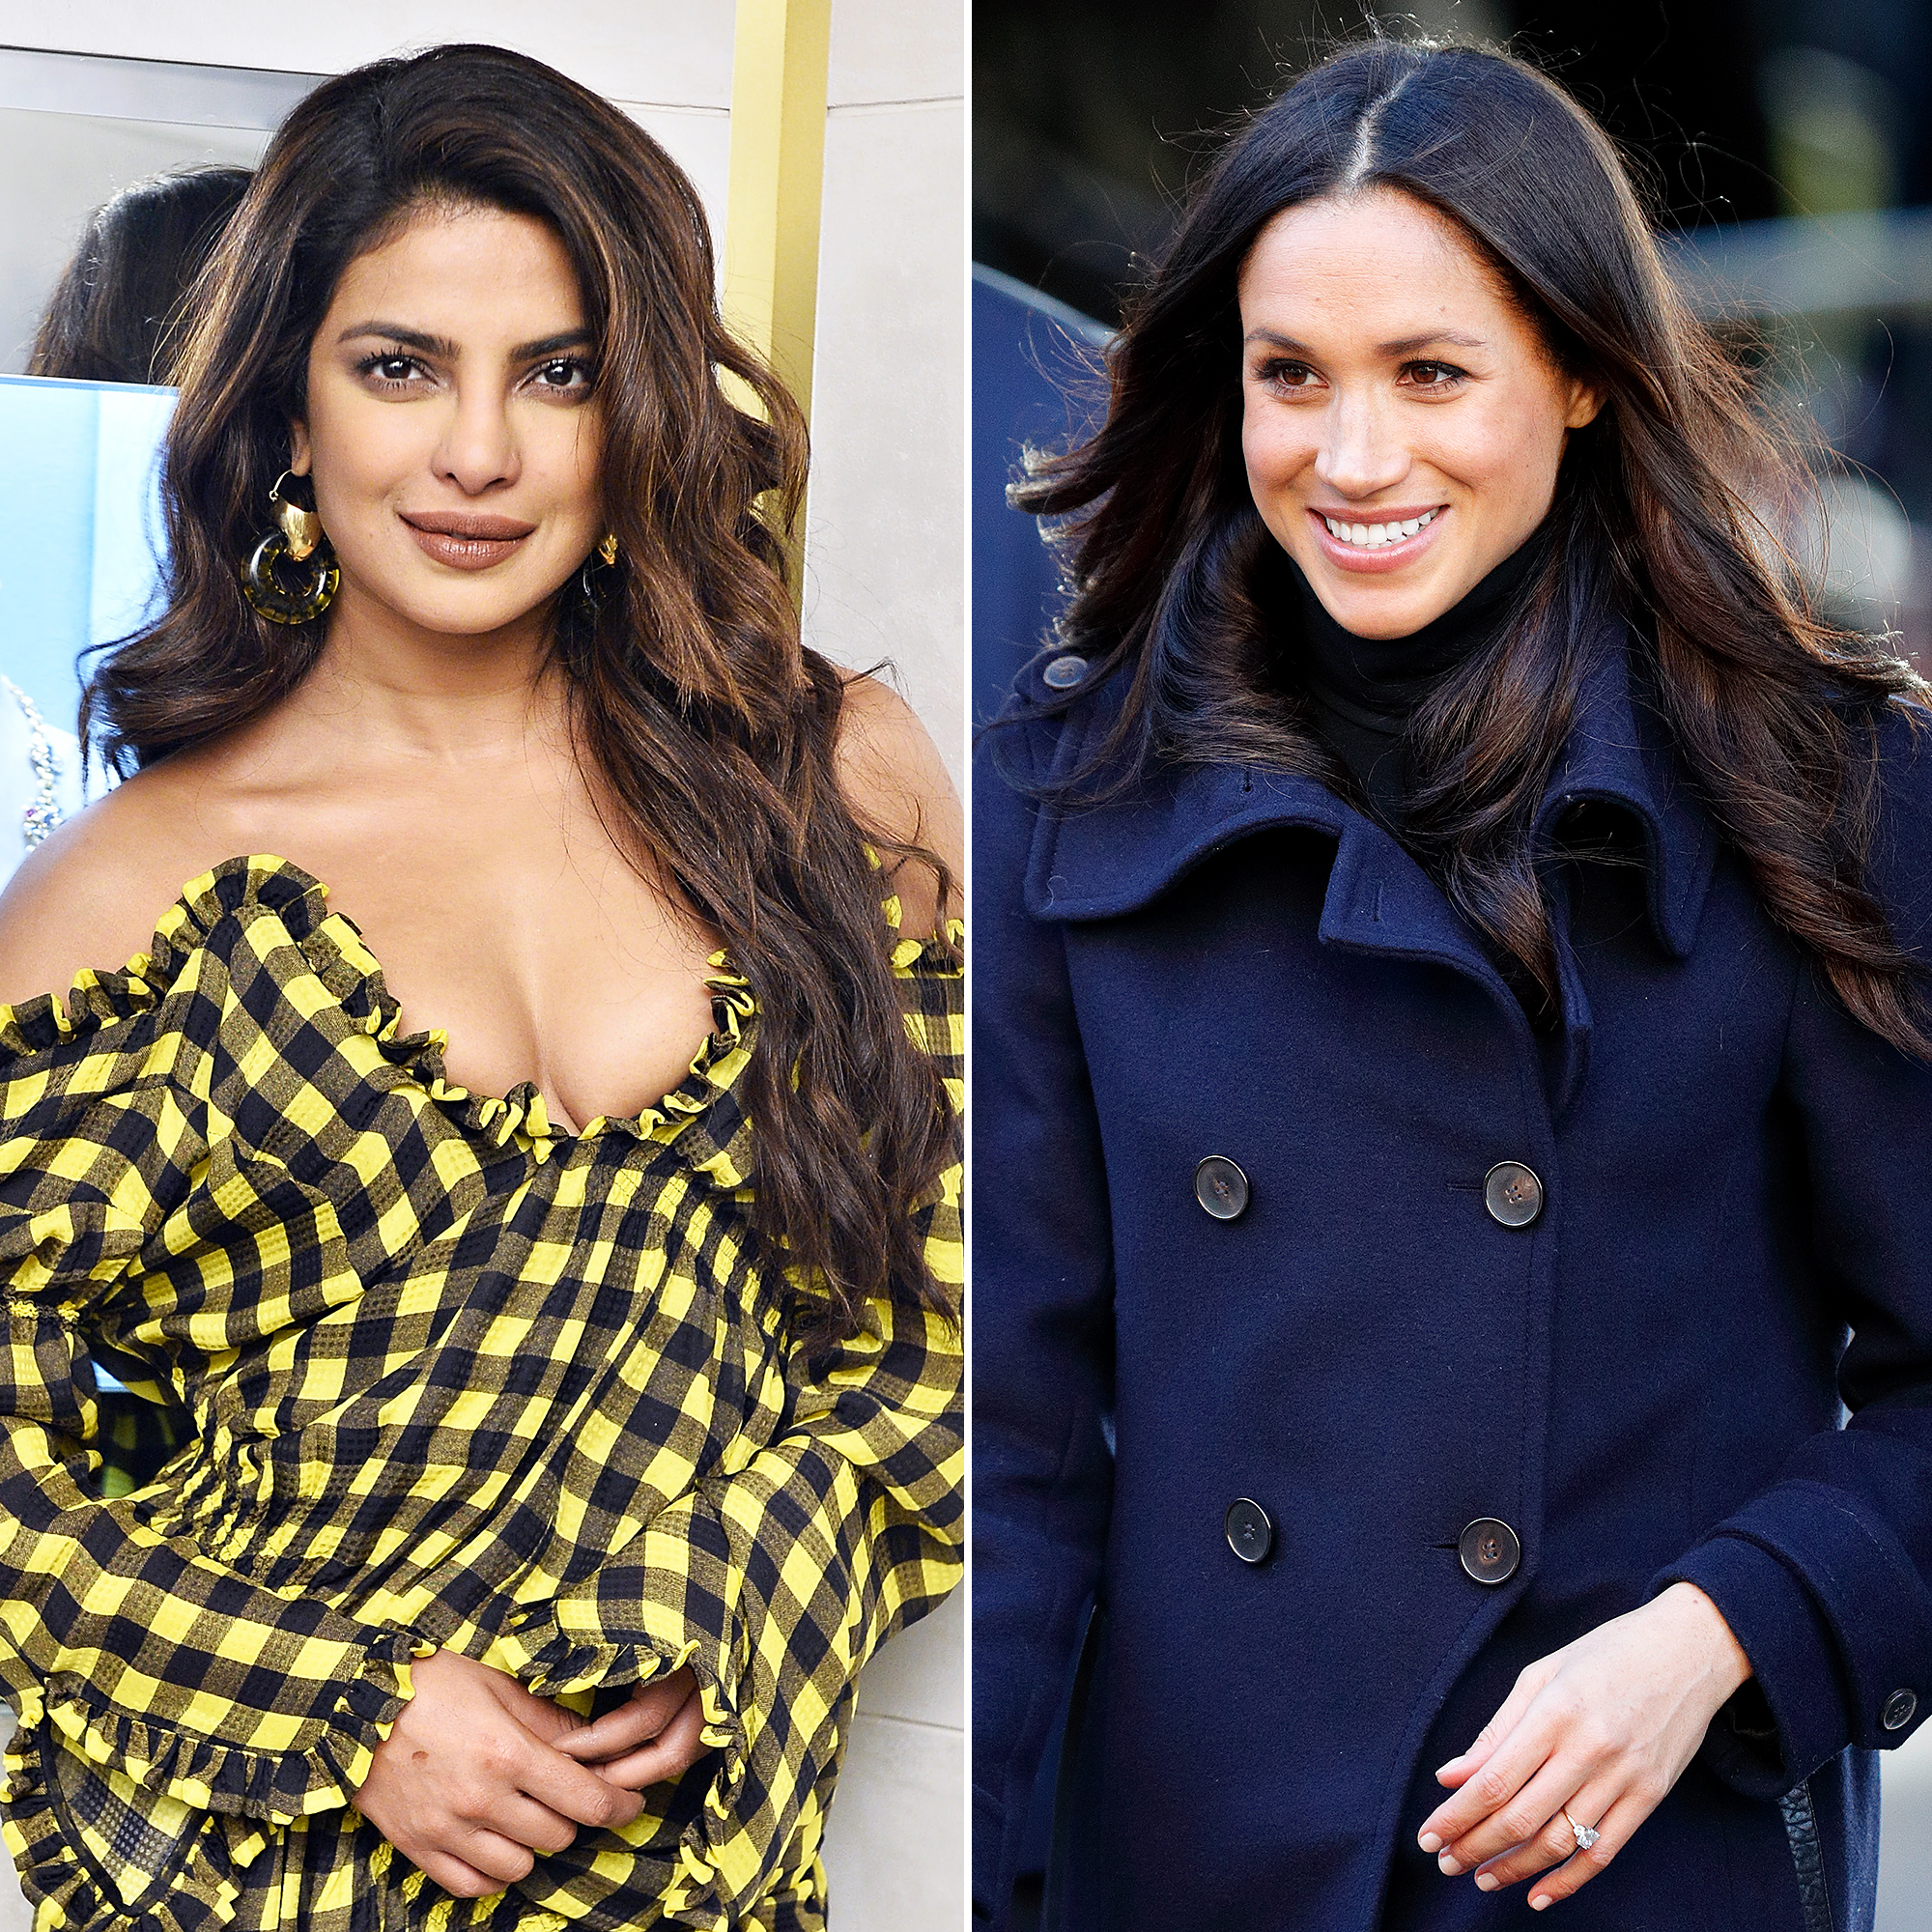 Priyanka Chopra Won't be one of Meghan Markle's Bridesmaids